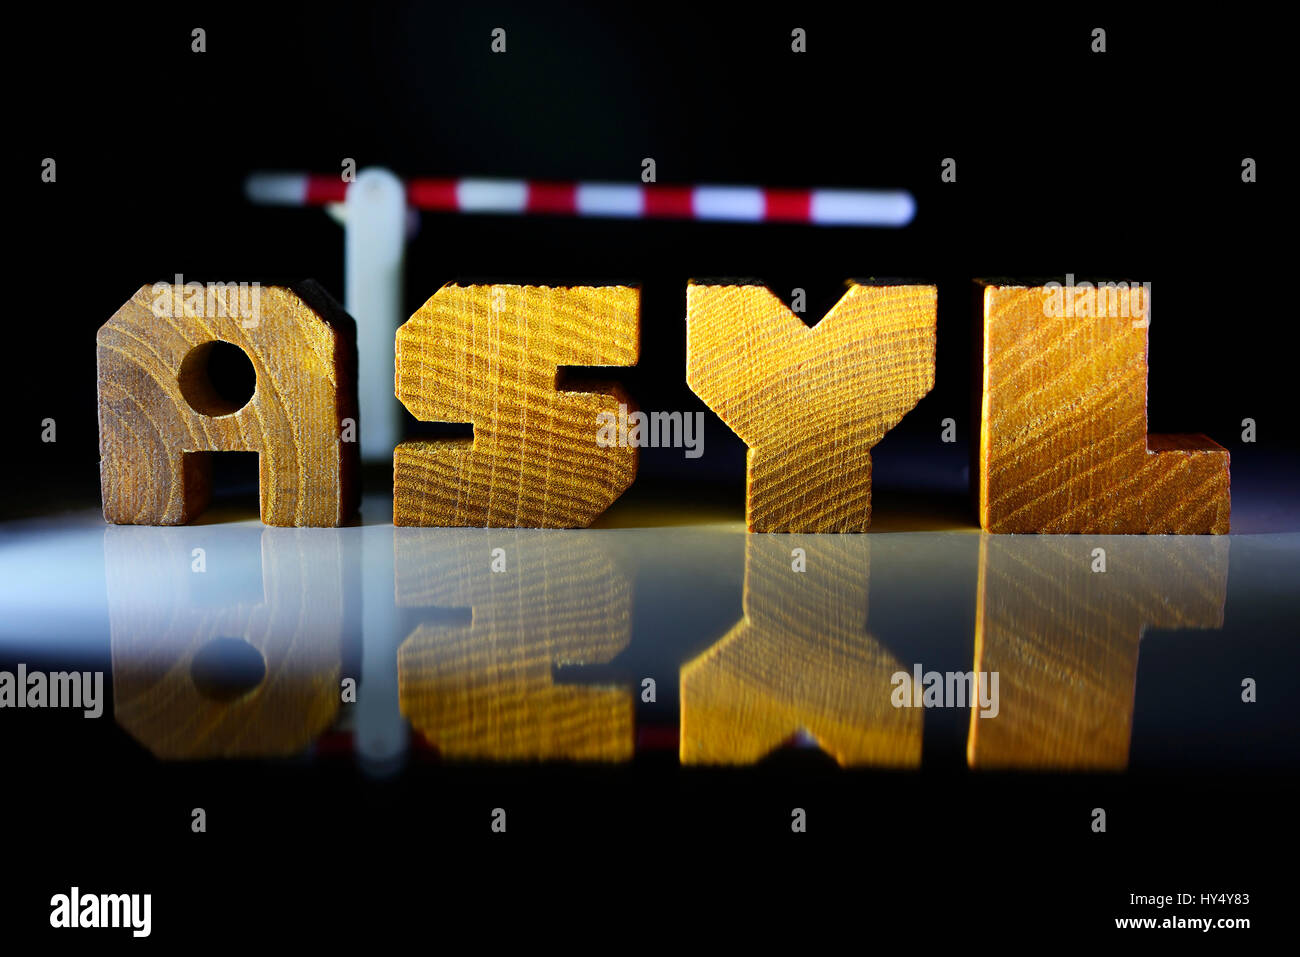 The word Asylum from wooden letter and tollgate, upper limit for refugees, Das Wort Asyl aus Holzbuchstaben und - Stock Image